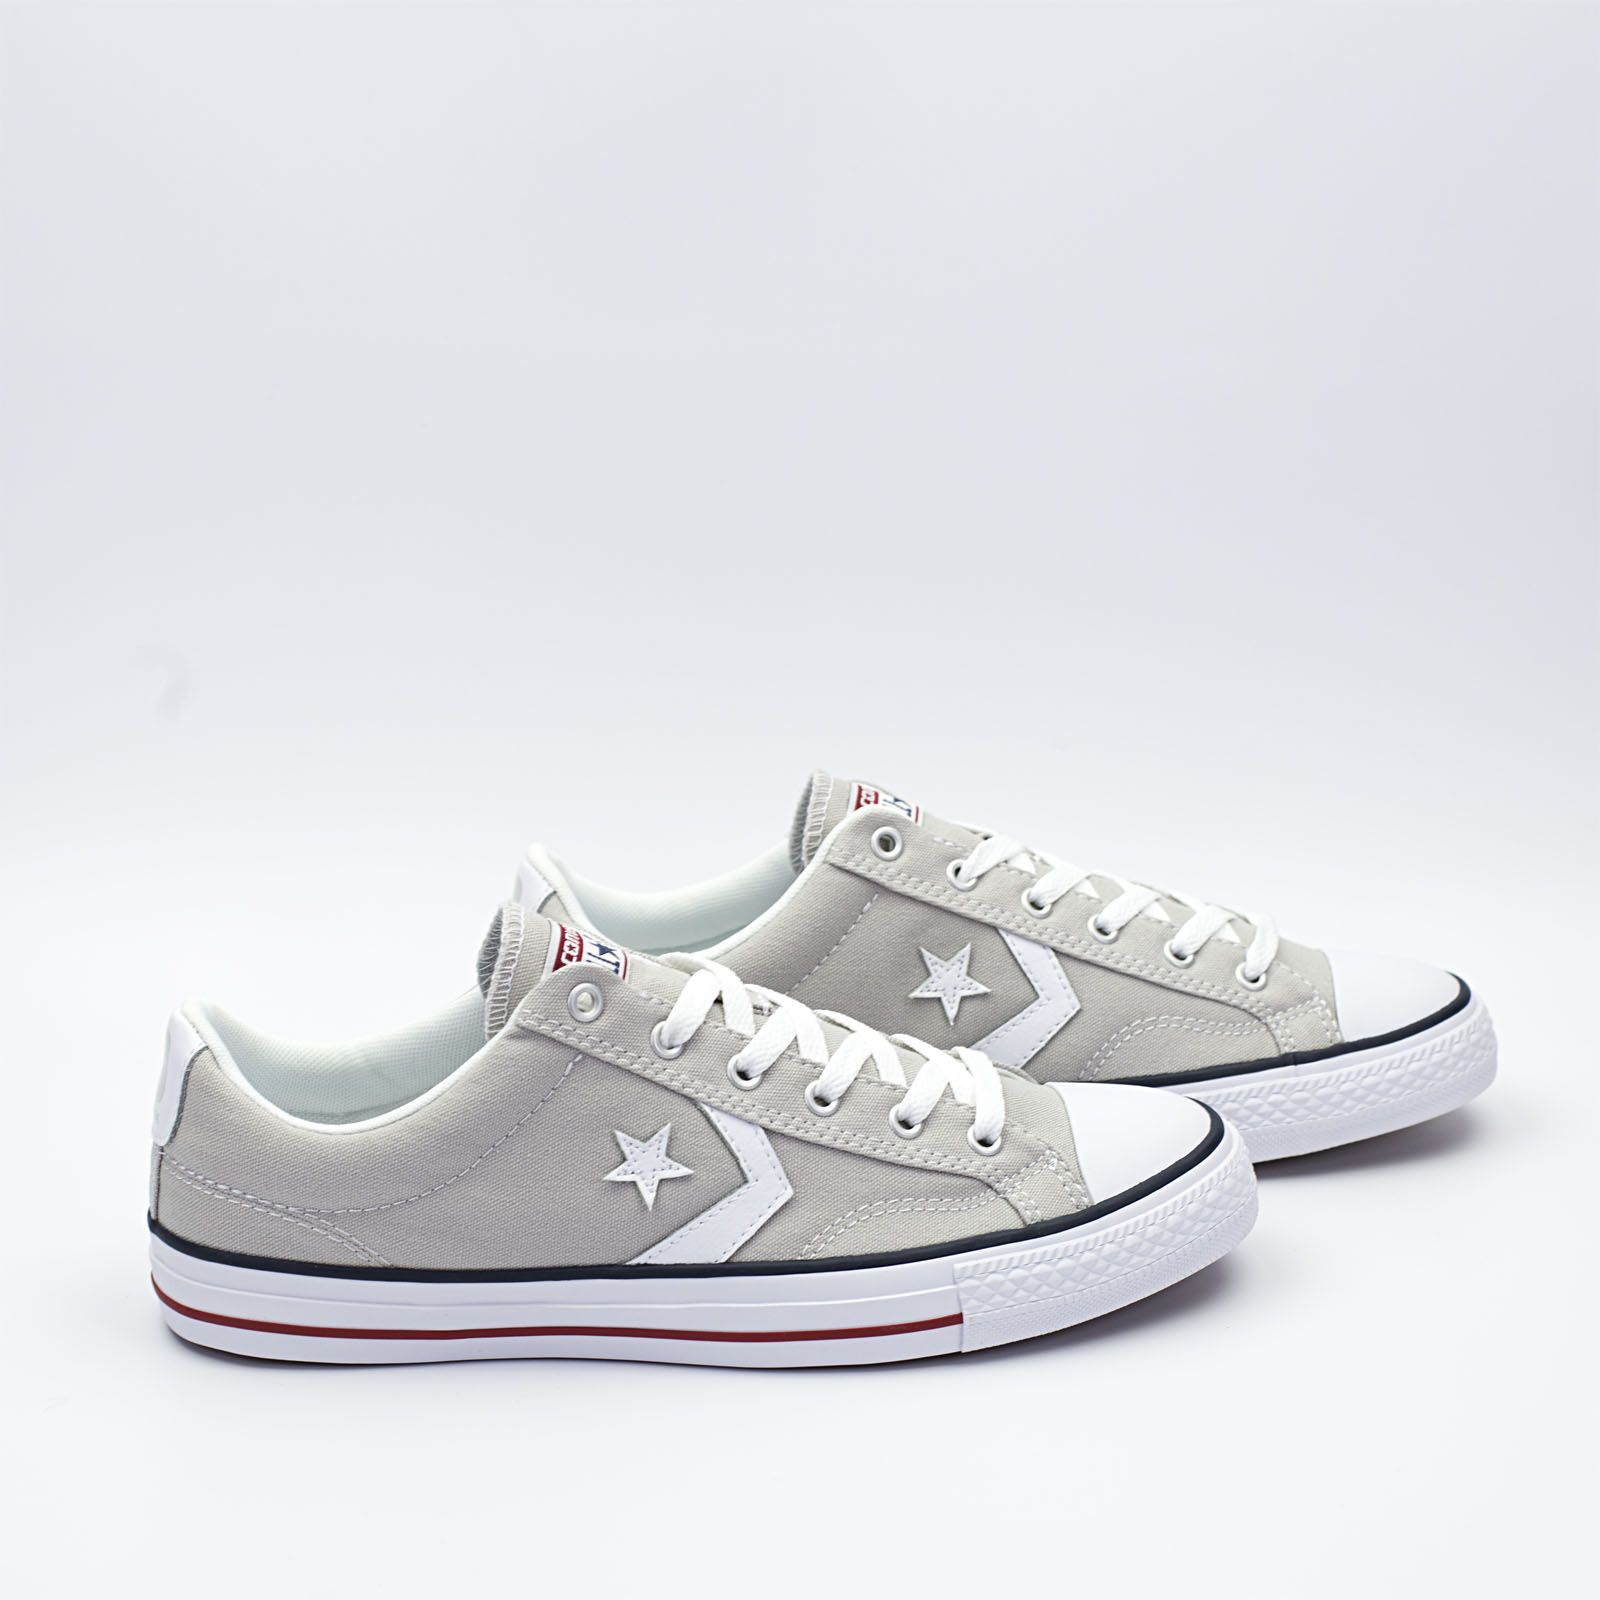 CONVERSE STAR PLAYER PLAYER STAR OX 56d899